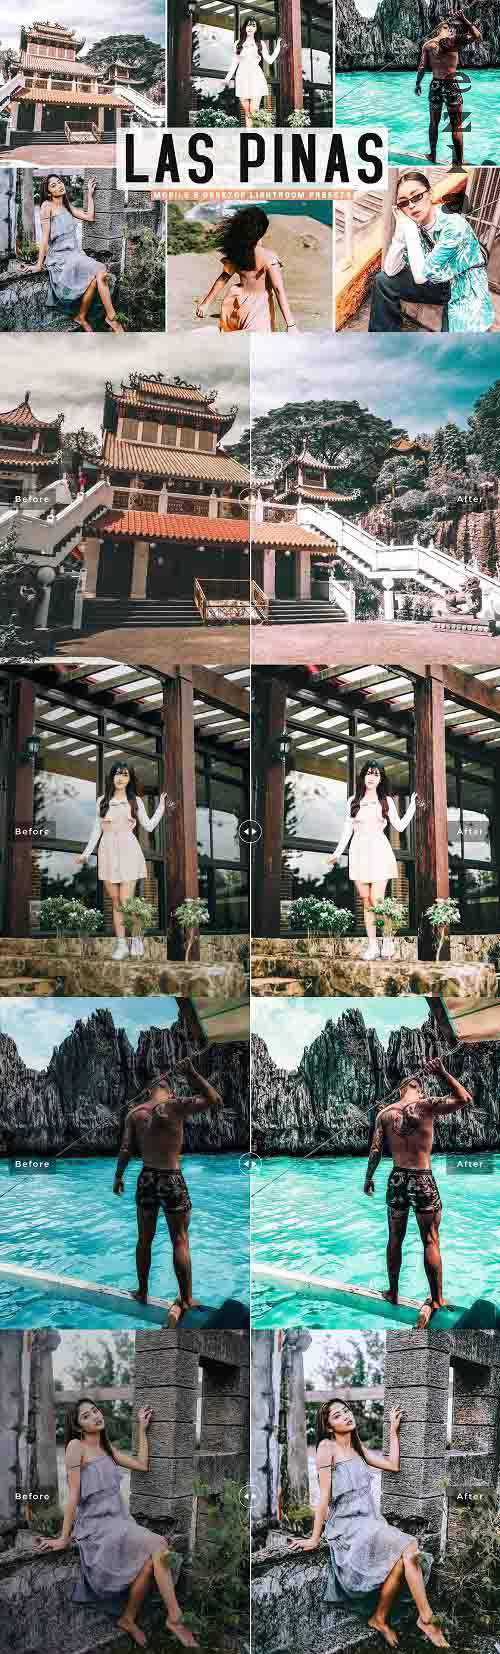 Las Pinas Pro Lightroom Presets – 5276521 – Mobile & Desktop